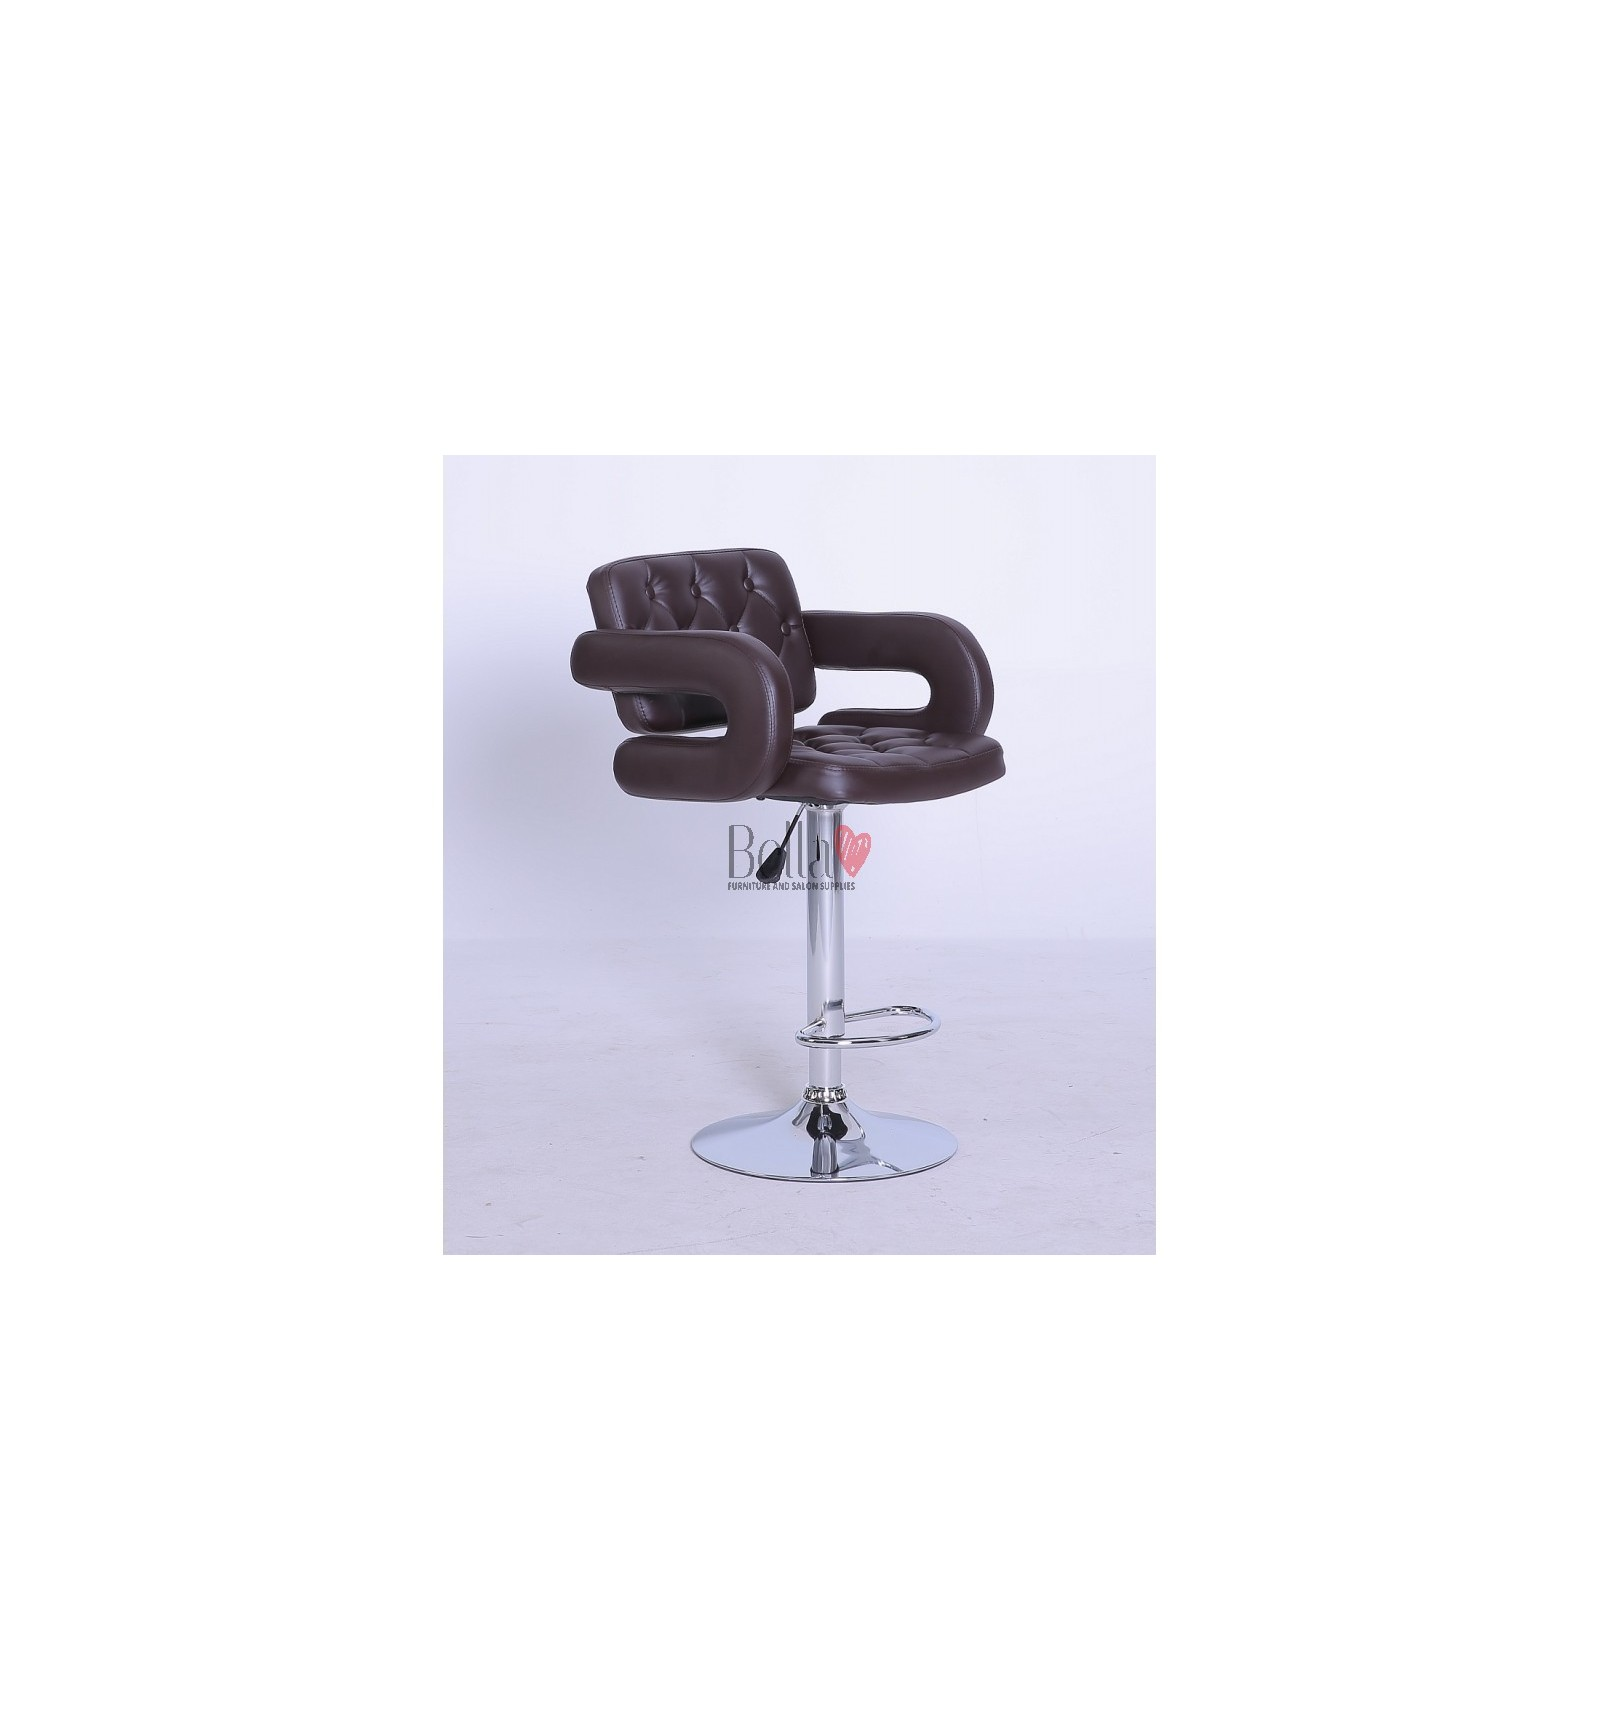 Classic Brown Professional Makeup chairs BFHC8403  sc 1 st  Bella Furniture & Professional Brown Makeup chairs for makeup salon and beauty salons